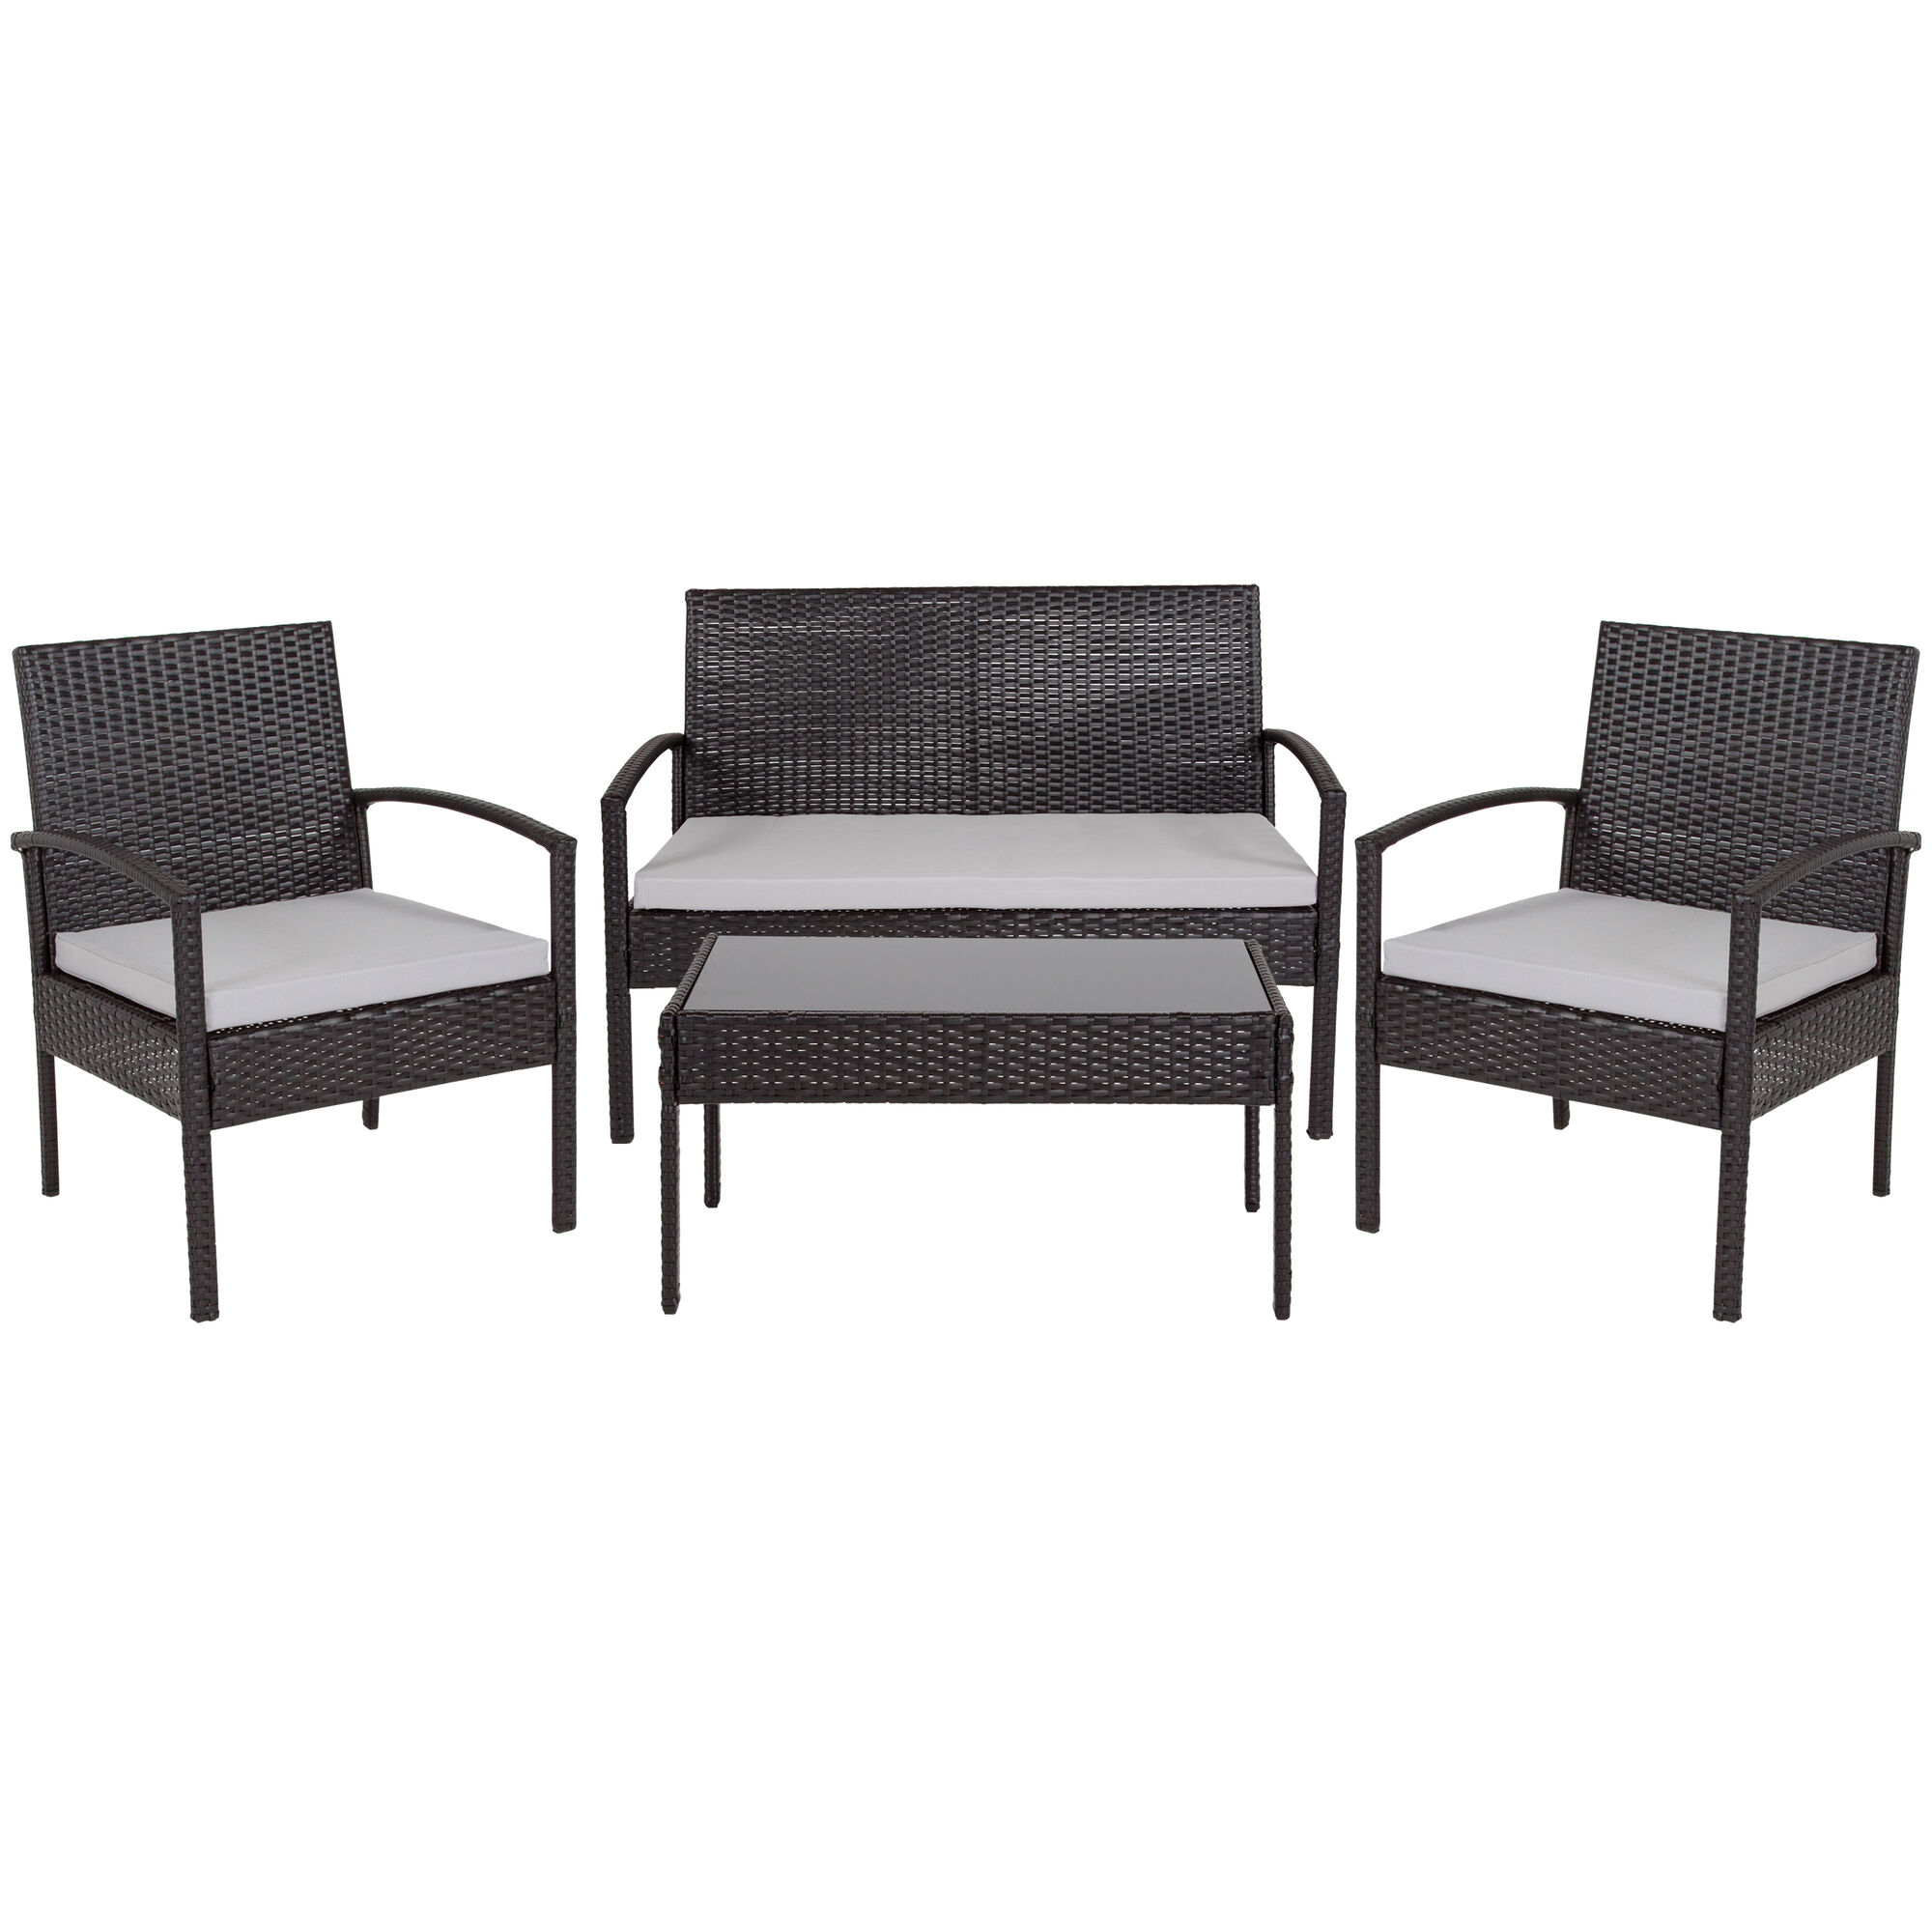 Amazing Aransas Series 4 Piece Black Patio Set With Steel Frame And Gray Cushions Download Free Architecture Designs Grimeyleaguecom